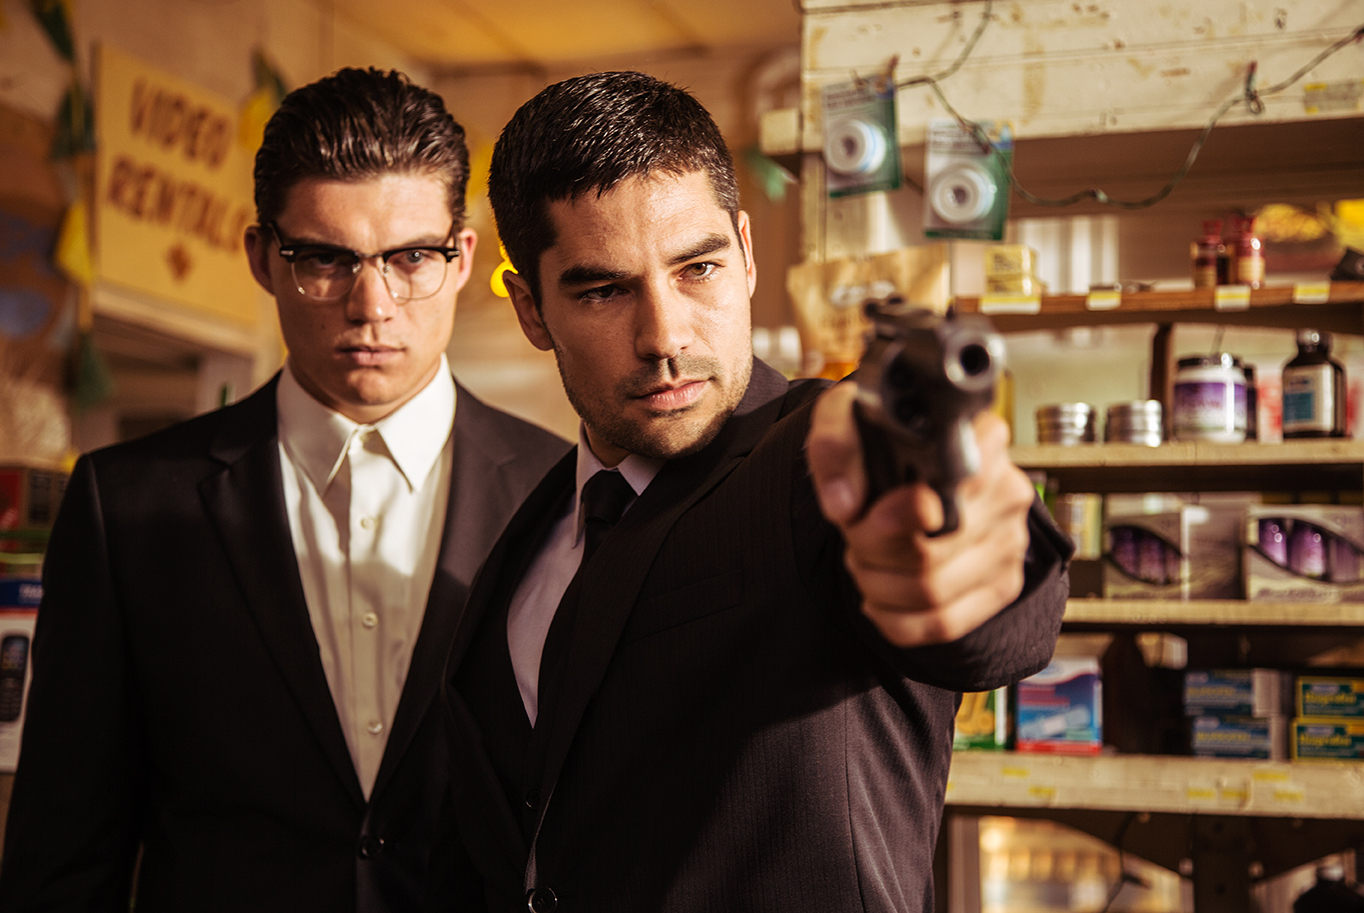 From Dusk Till Dawn The Series Gets Two New Images Nerd Reactor